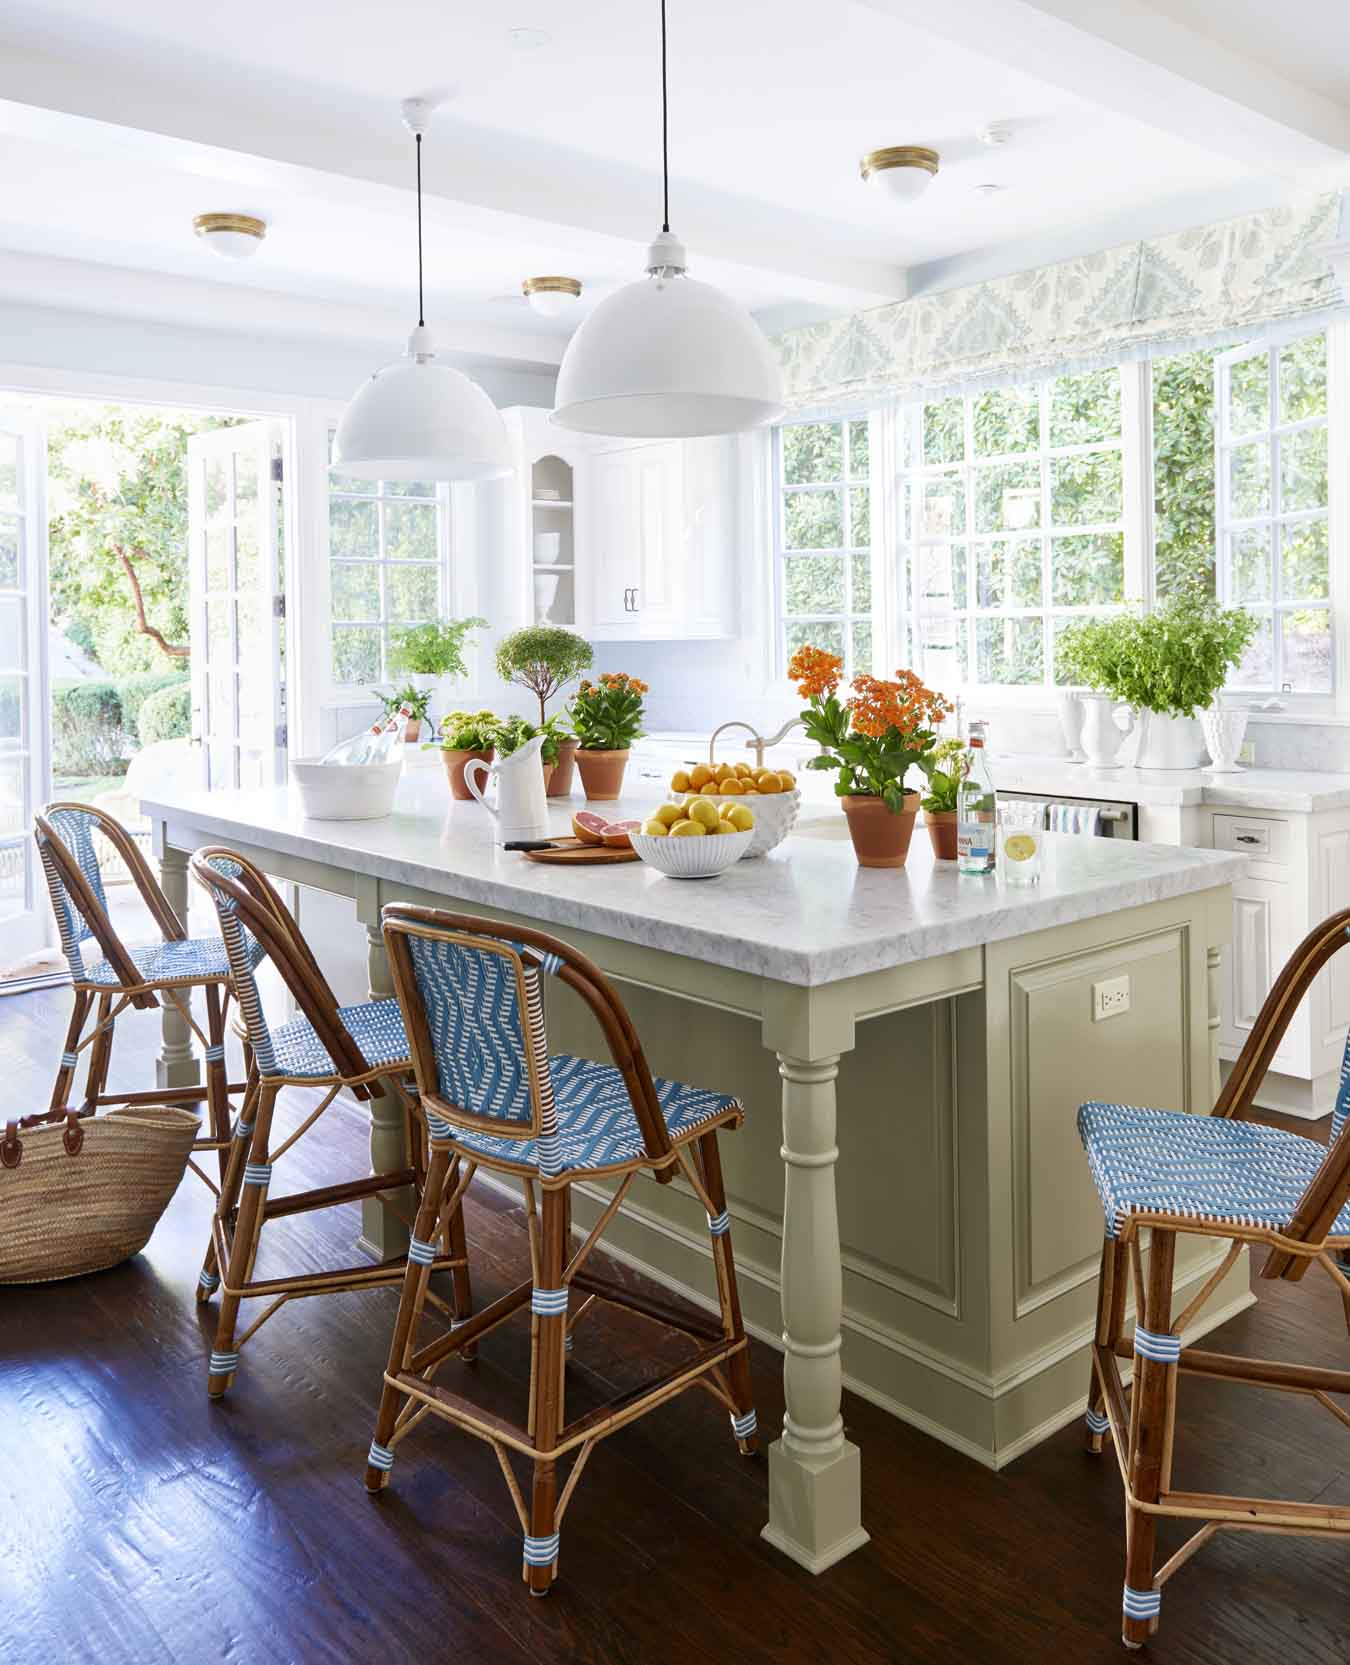 18 Amazing Kitchen Island Ideas, Plus Costs & ROI – Home ... on gray and brown kitchen ideas, medium l-shaped kitchen ideas, log cabin kitchen ideas, large game room ideas, large kitchen island lighting, large mud room ideas, large 2 level kitchen island, large open kitchen ideas, large u shaped kitchen, large kitchen island cabinets, large bar ideas, large stone fireplace ideas, study island ideas, large kitchen equipment list, large kitchen peninsula ideas, large kitchen designs, large hot tub ideas, large kitchen loft, garage island ideas, large workshop ideas,